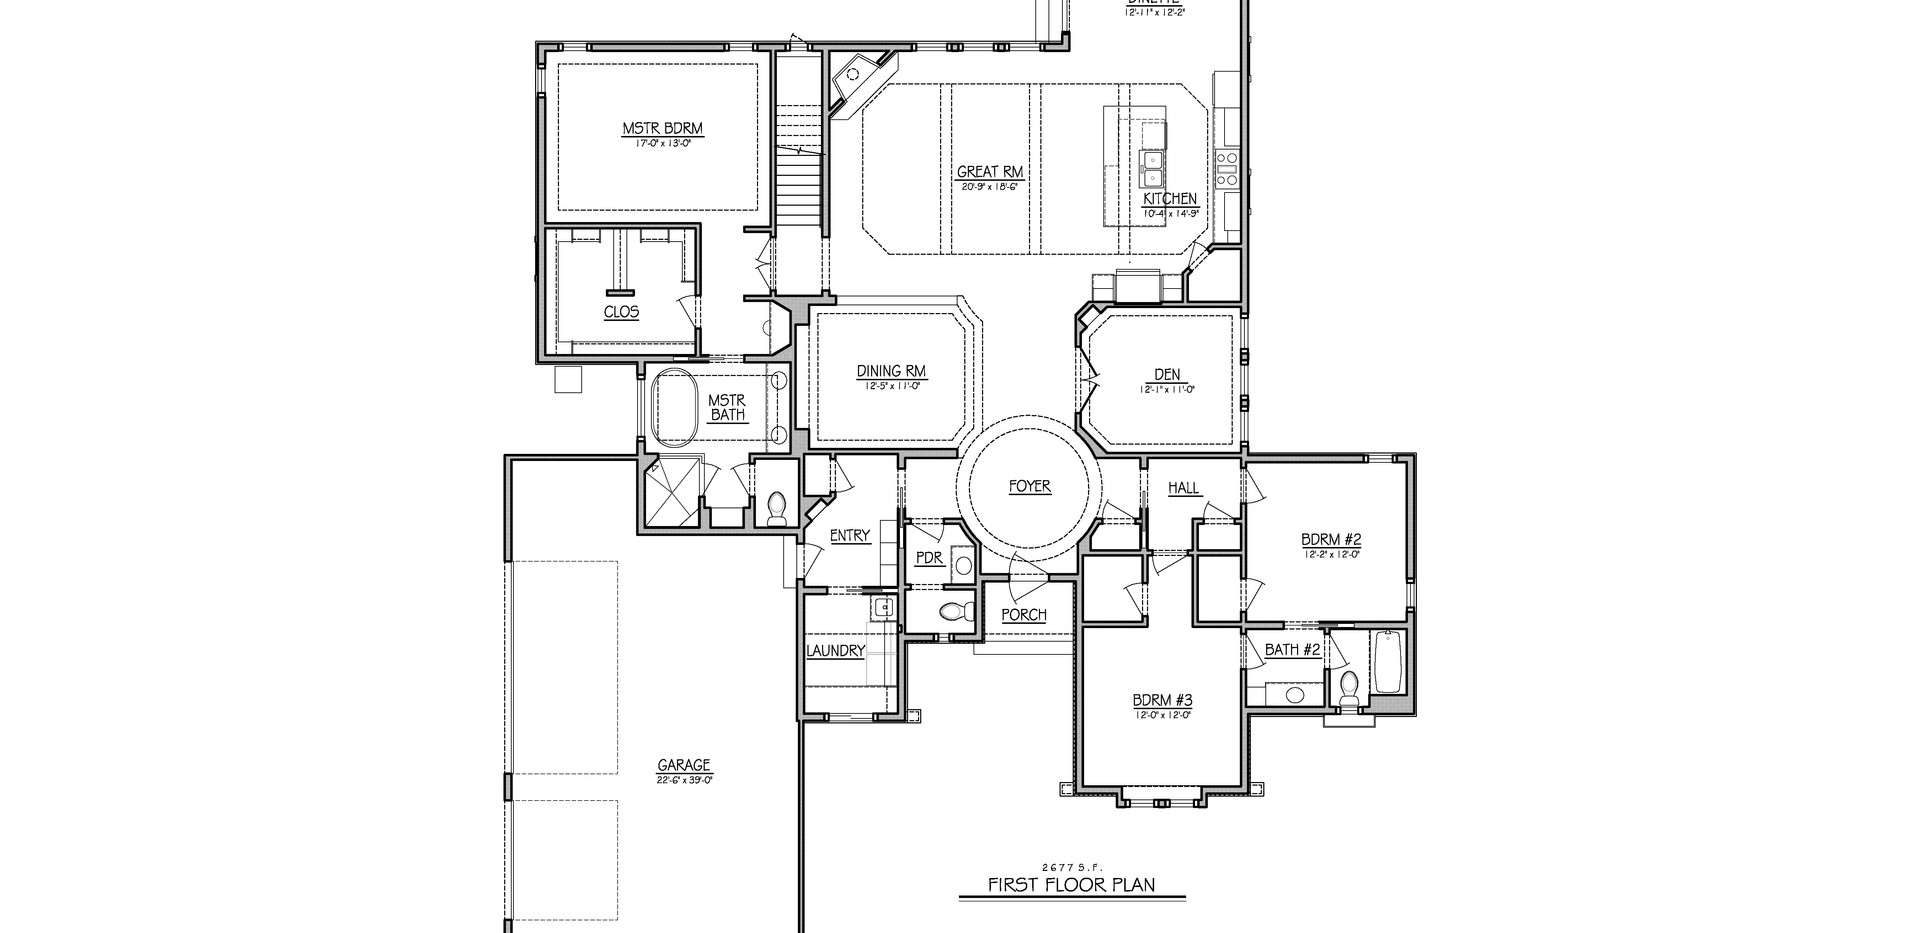 CHESAPEAKE RANCH FLOOR PLAN BROCHURE.jpg